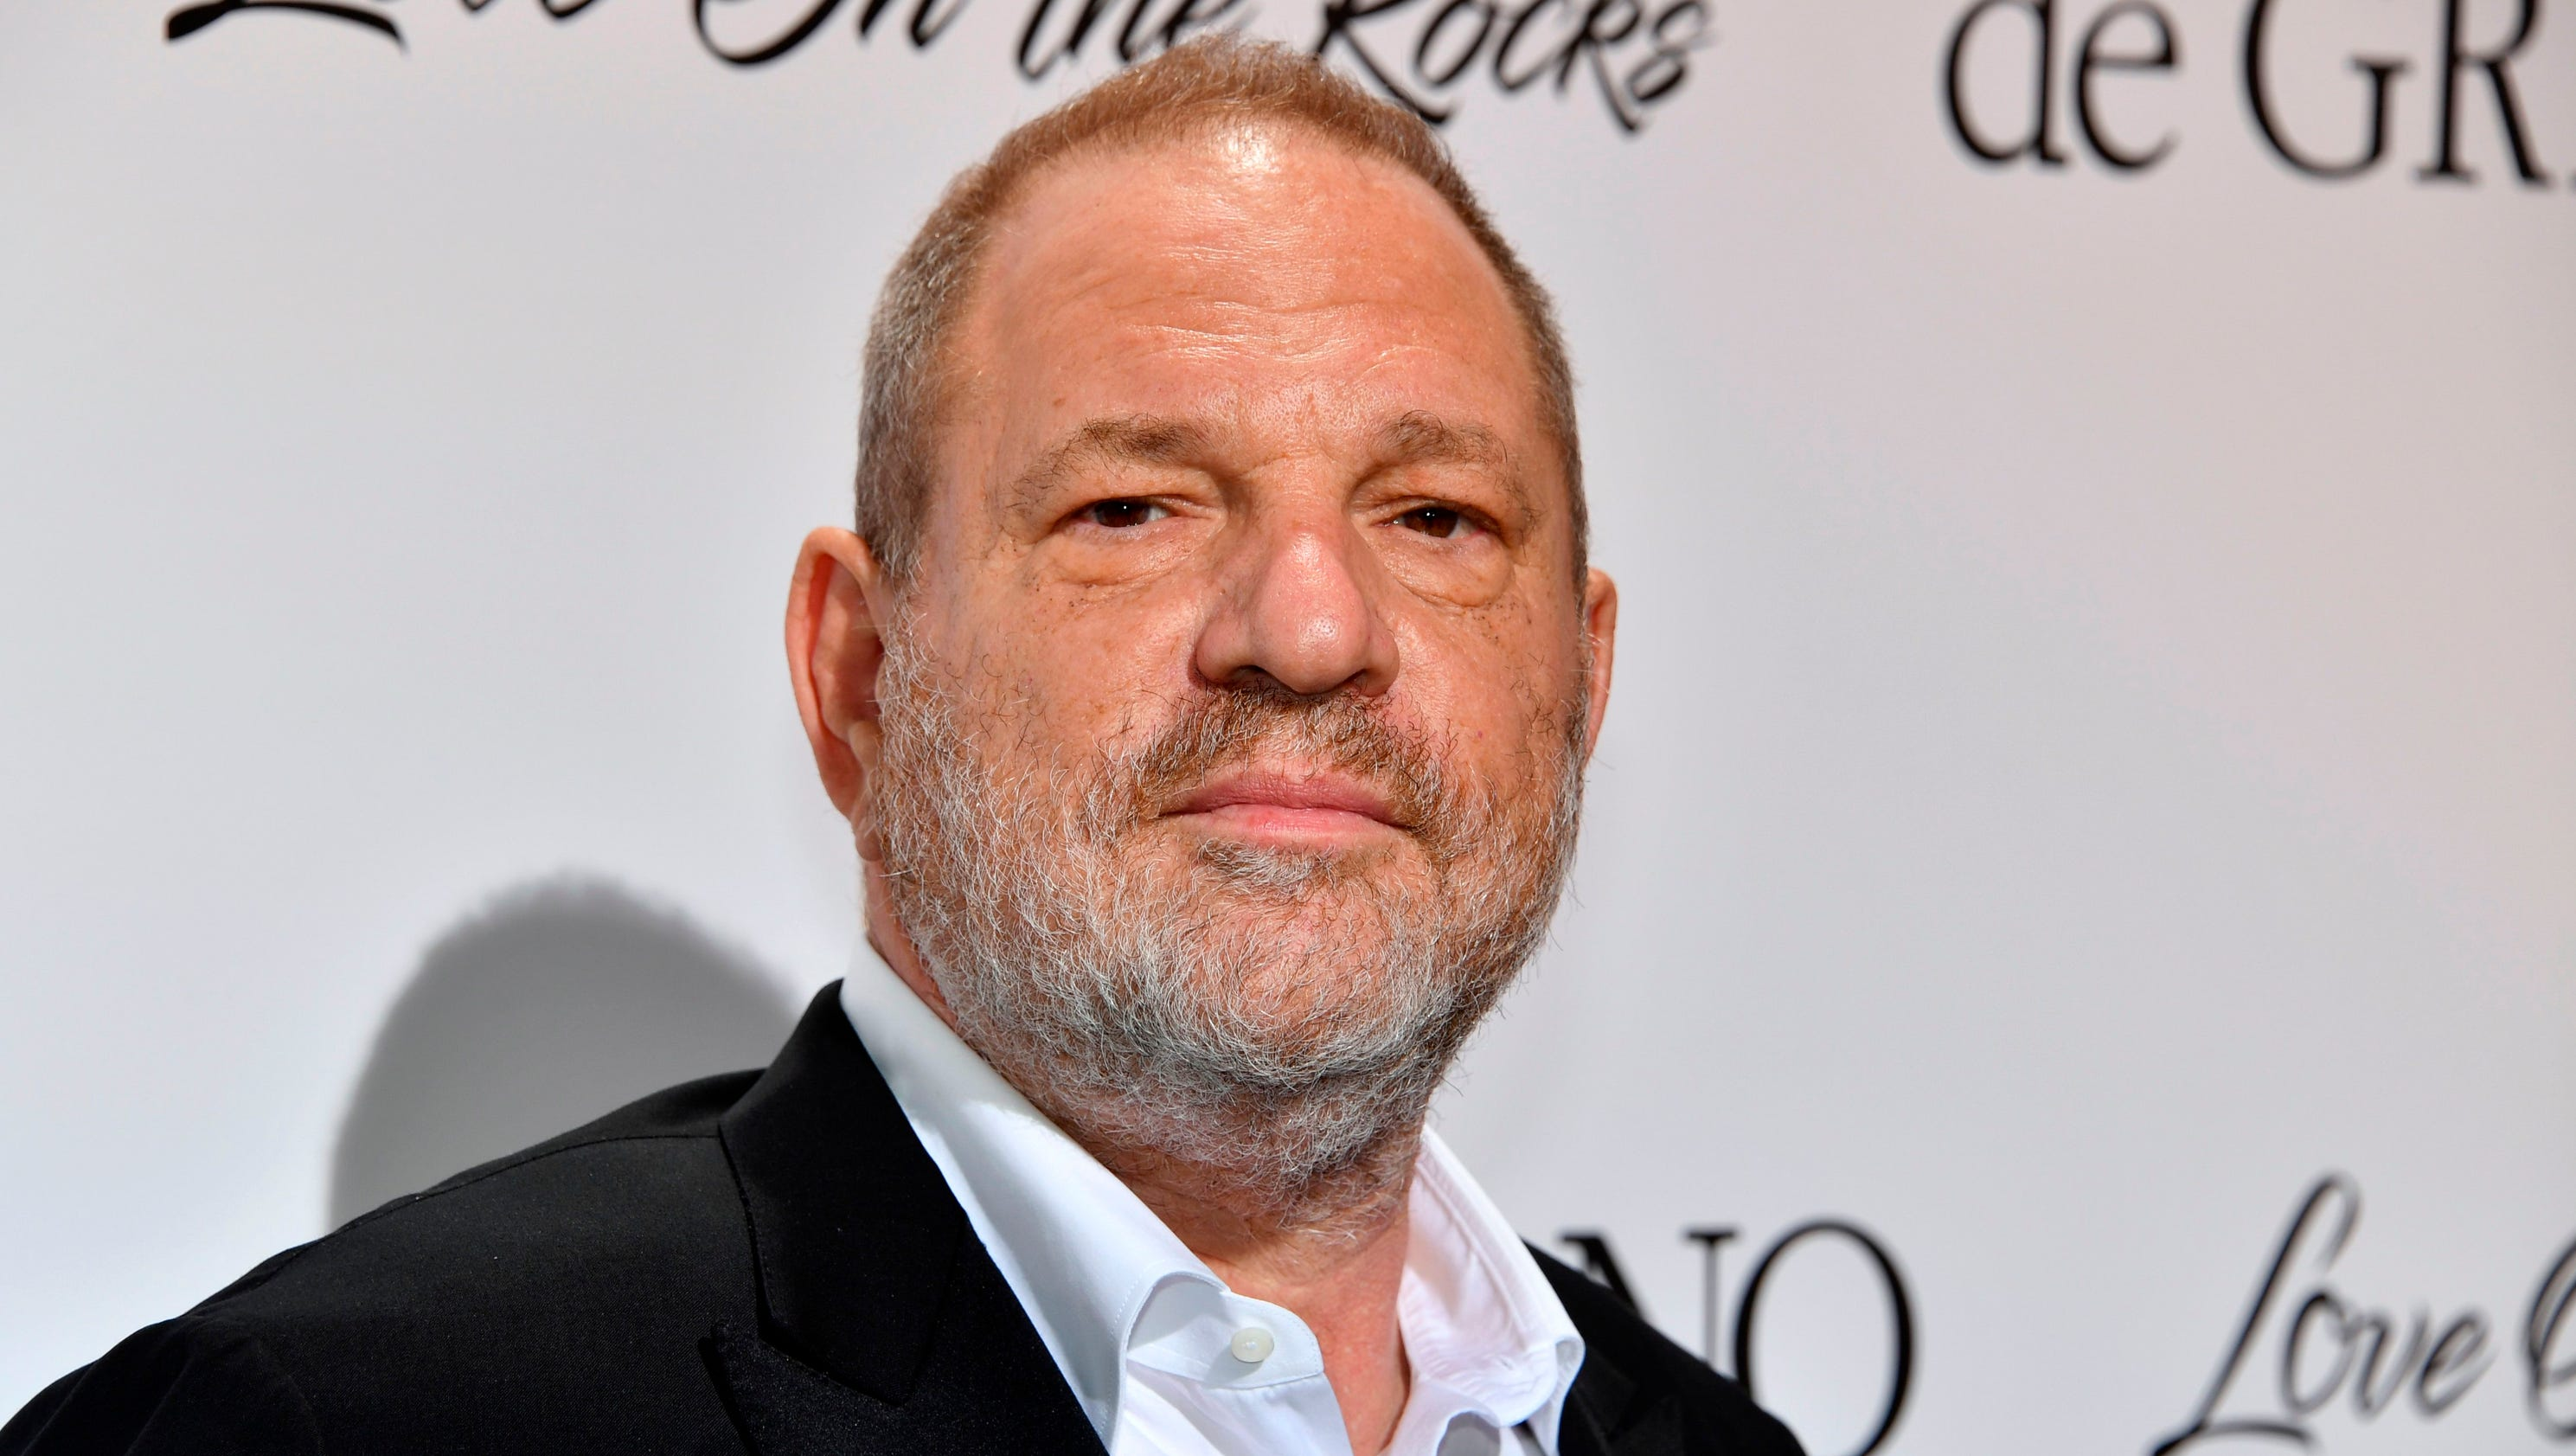 In the wake of Harvey Weinstein, film Academy issues new code of conduct